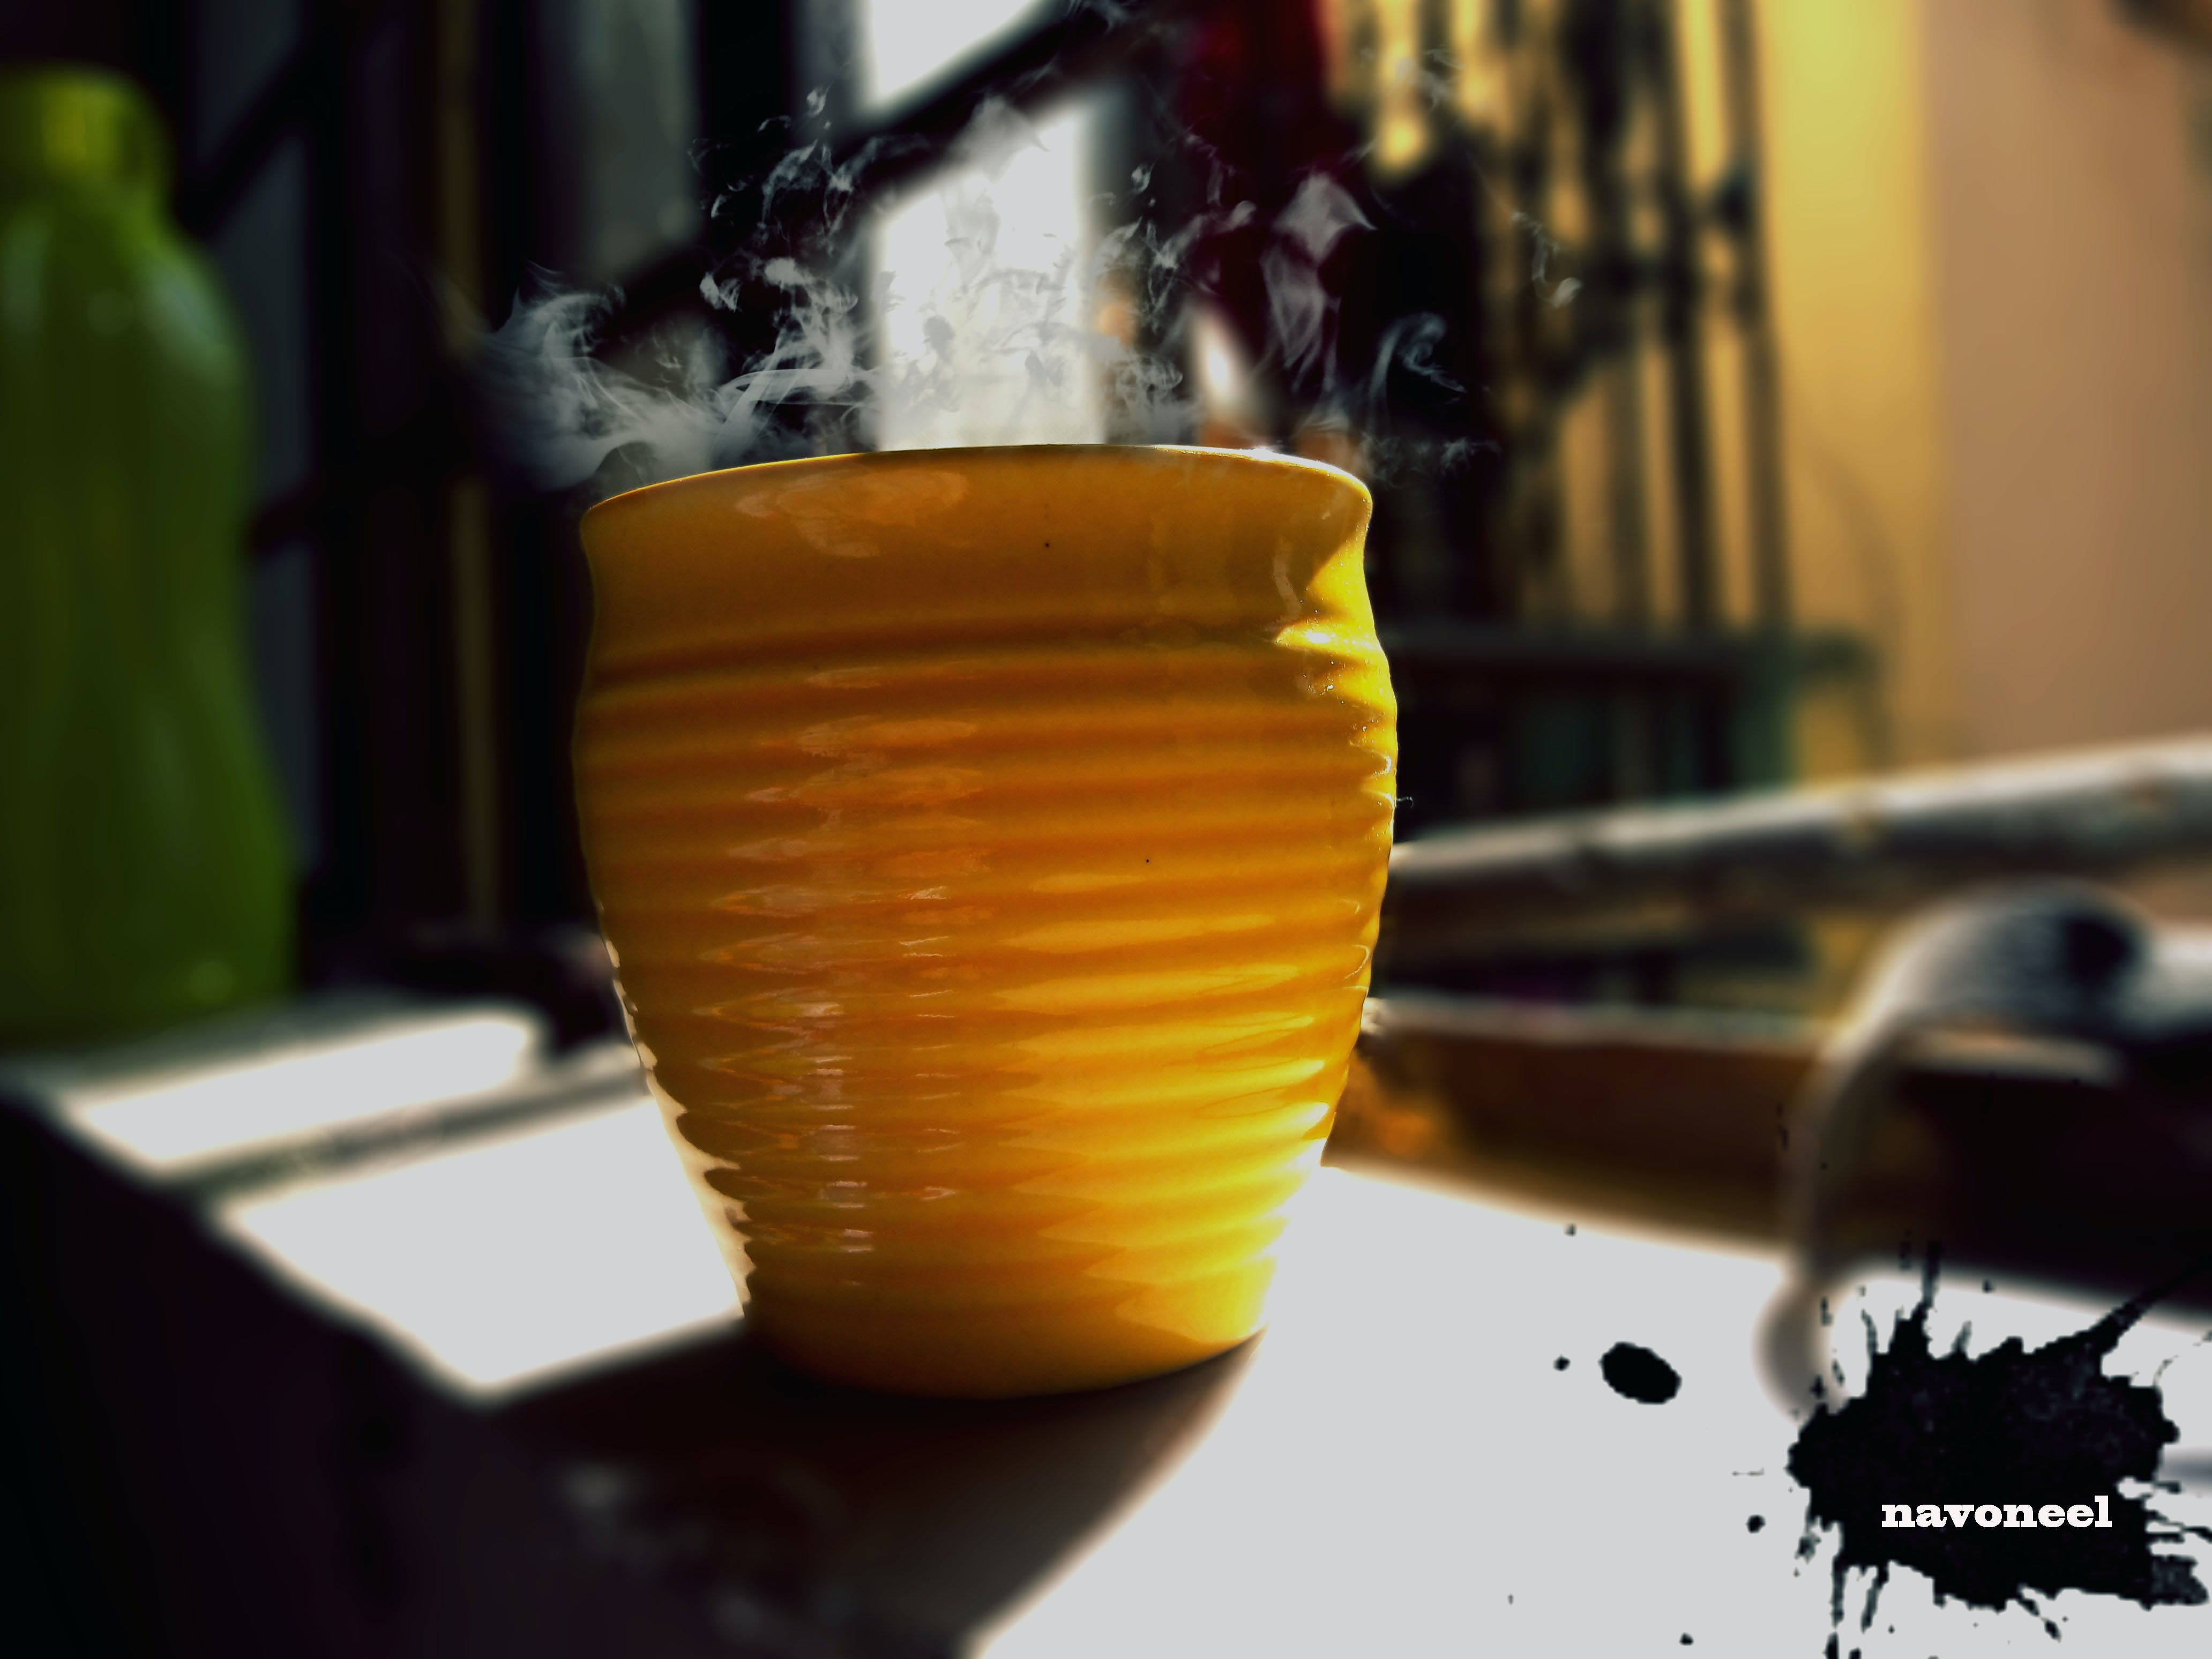 coffee, coffee cup, golden yellow